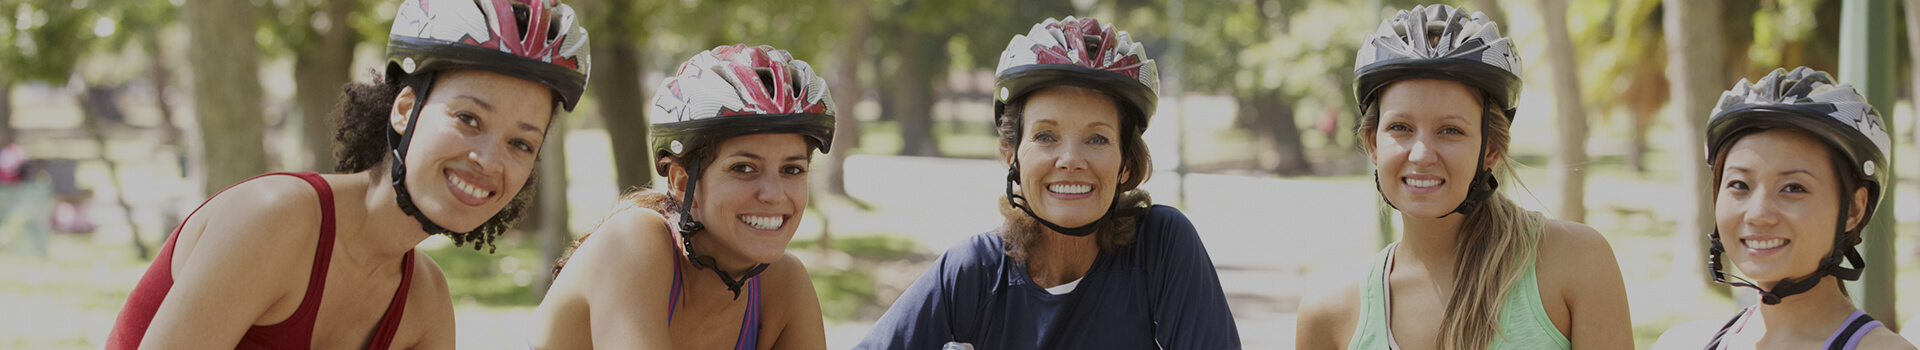 group of women with bicycle helmets on